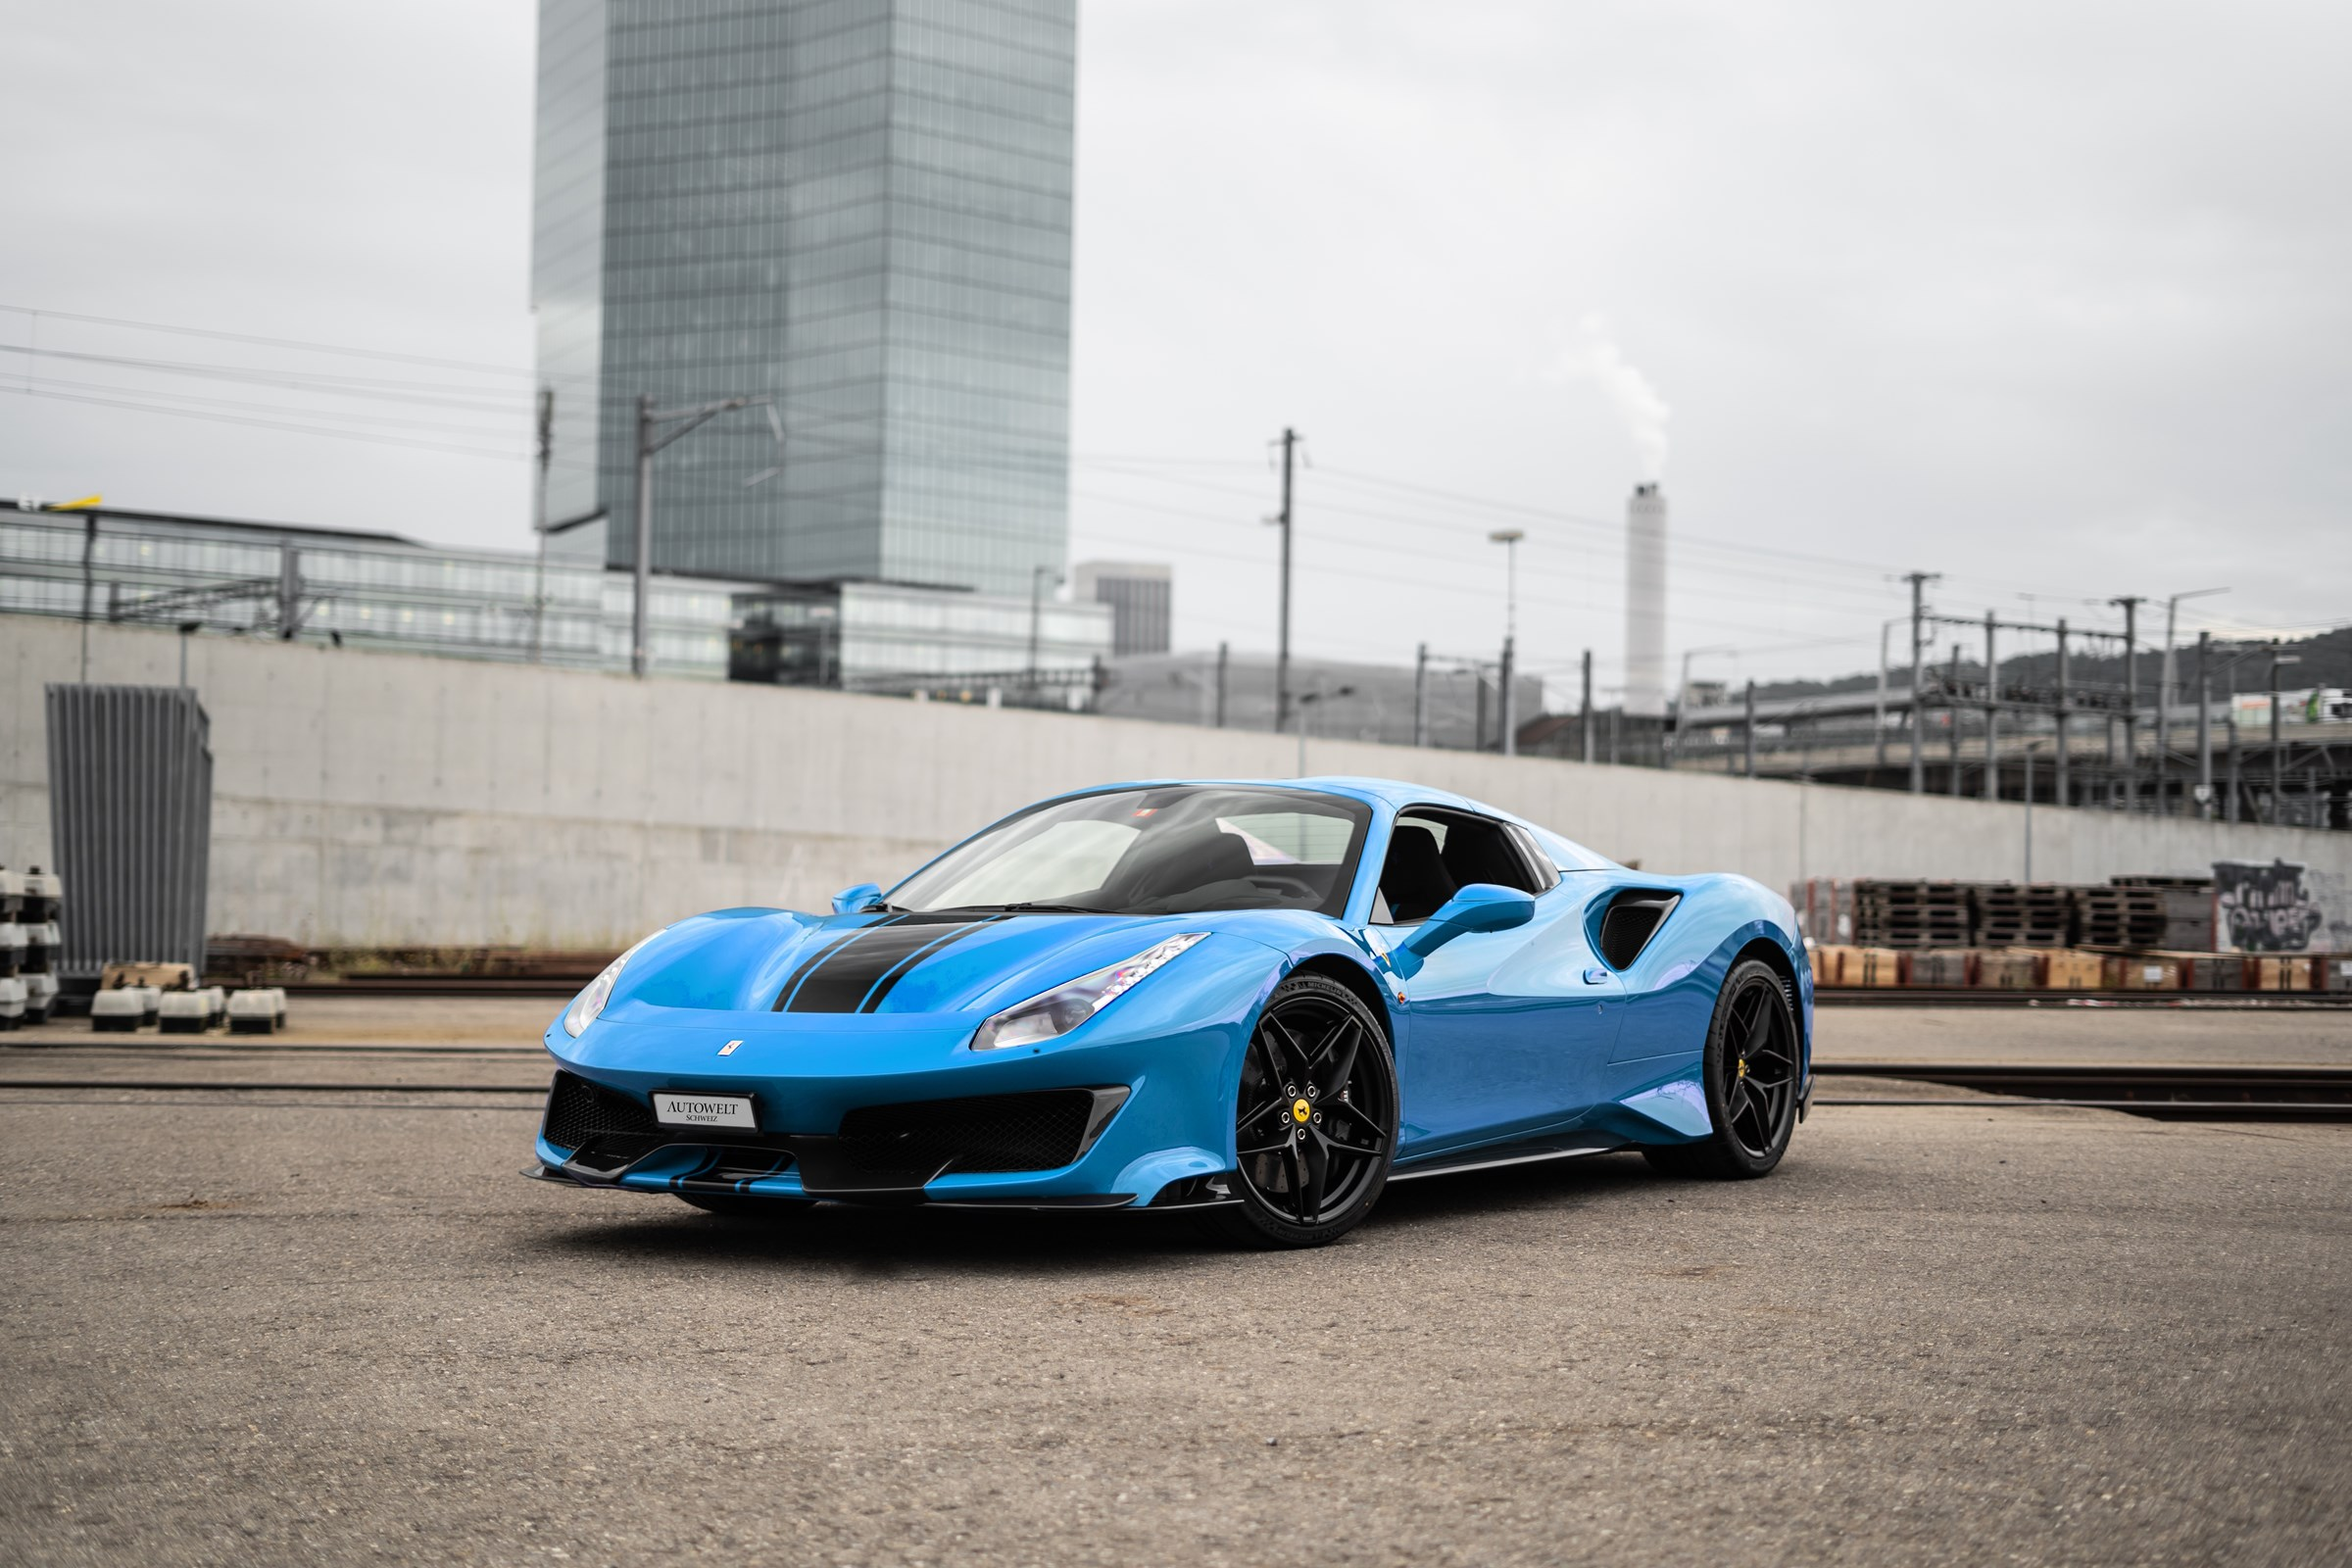 Buy New Car Convertible Ferrari 488 Pista Spider 3 9 V8 10 Km At 650000 Chf On Carforyou Ch